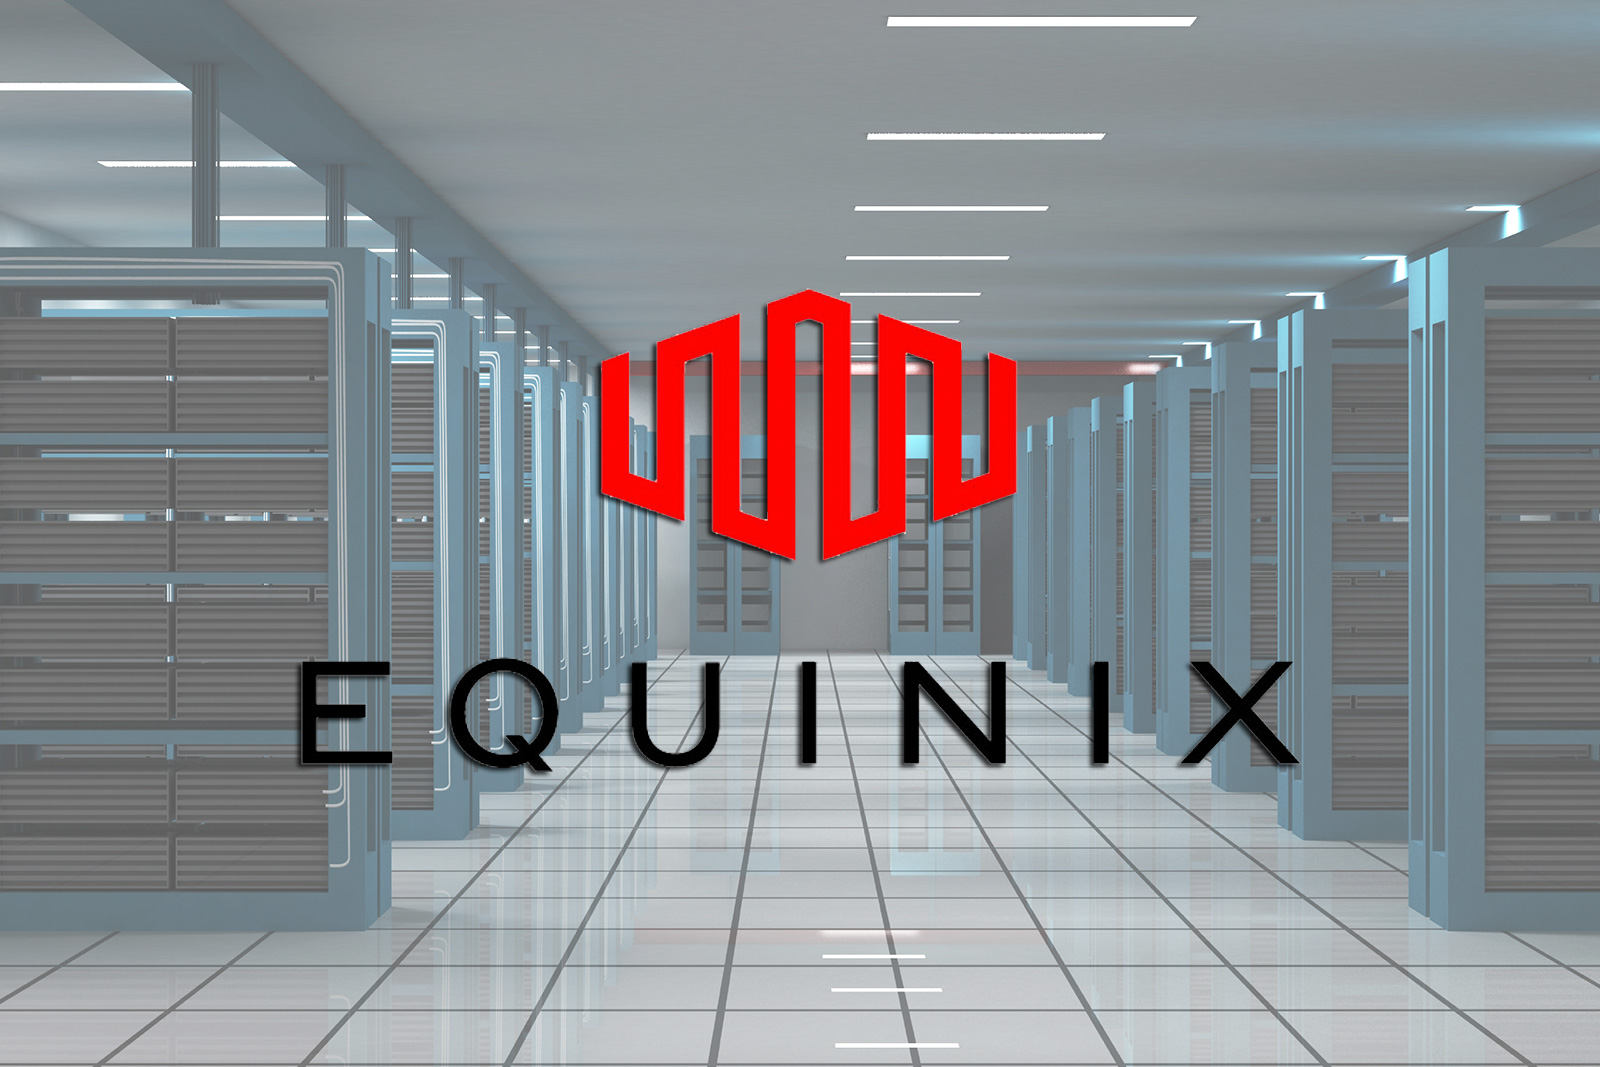 Photo of Equinix Launches Large Expansion of Interconnection Services in EMEA